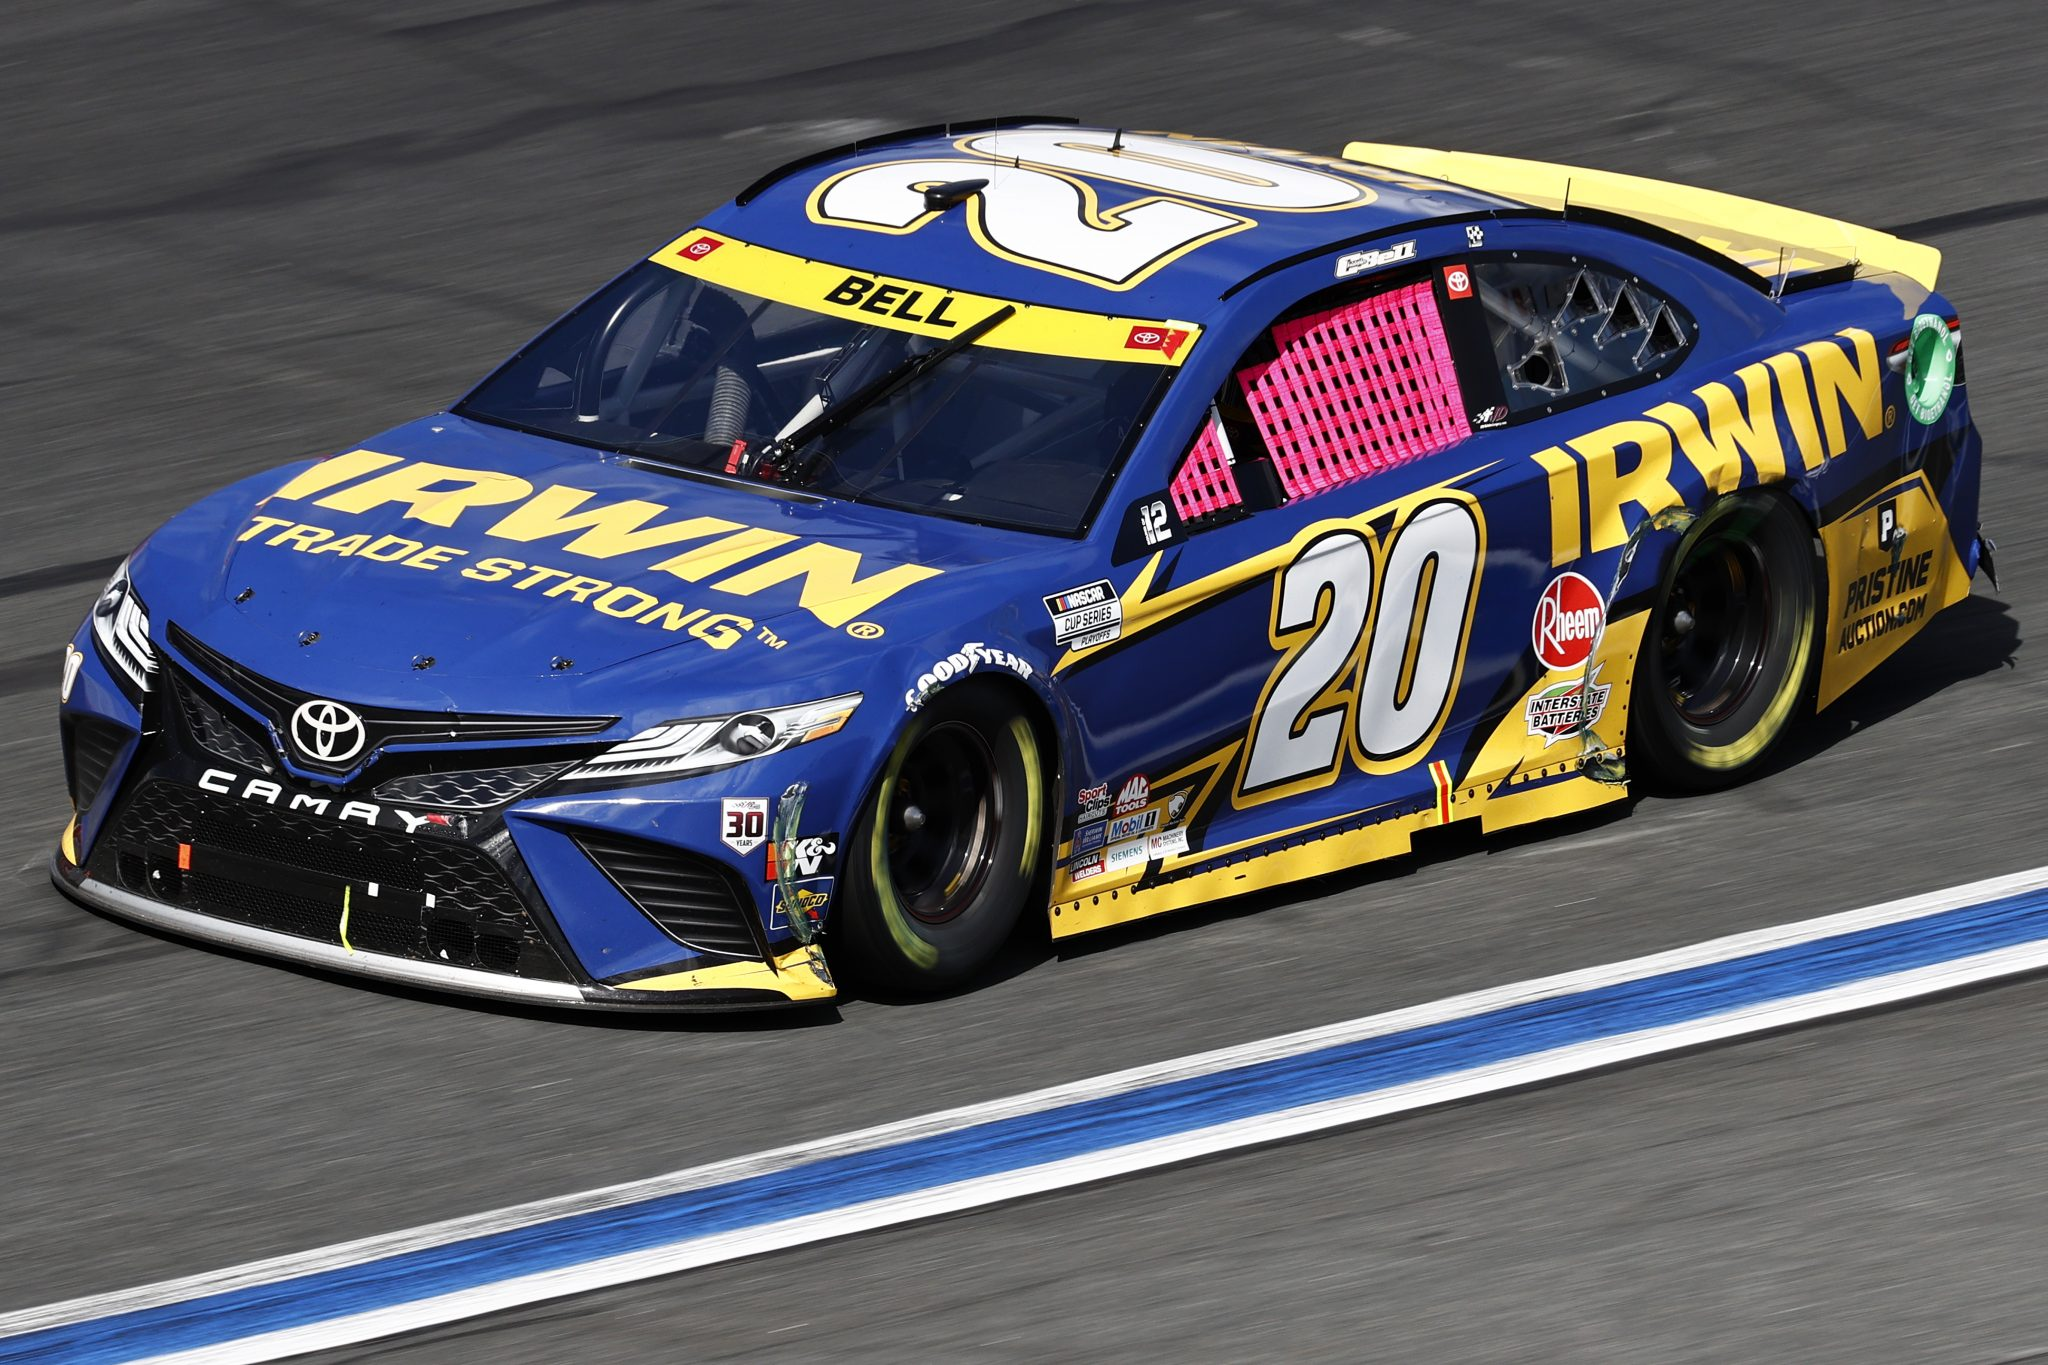 CONCORD, NORTH CAROLINA - OCTOBER 10: Christopher Bell, driver of the #20 Irwin Trade Strong Toyota, drives during the NASCAR Cup Series Bank of America ROVAL 400 at Charlotte Motor Speedway on October 10, 2021 in Concord, North Carolina. (Photo by Jared C. Tilton/Getty Images) | Getty Images